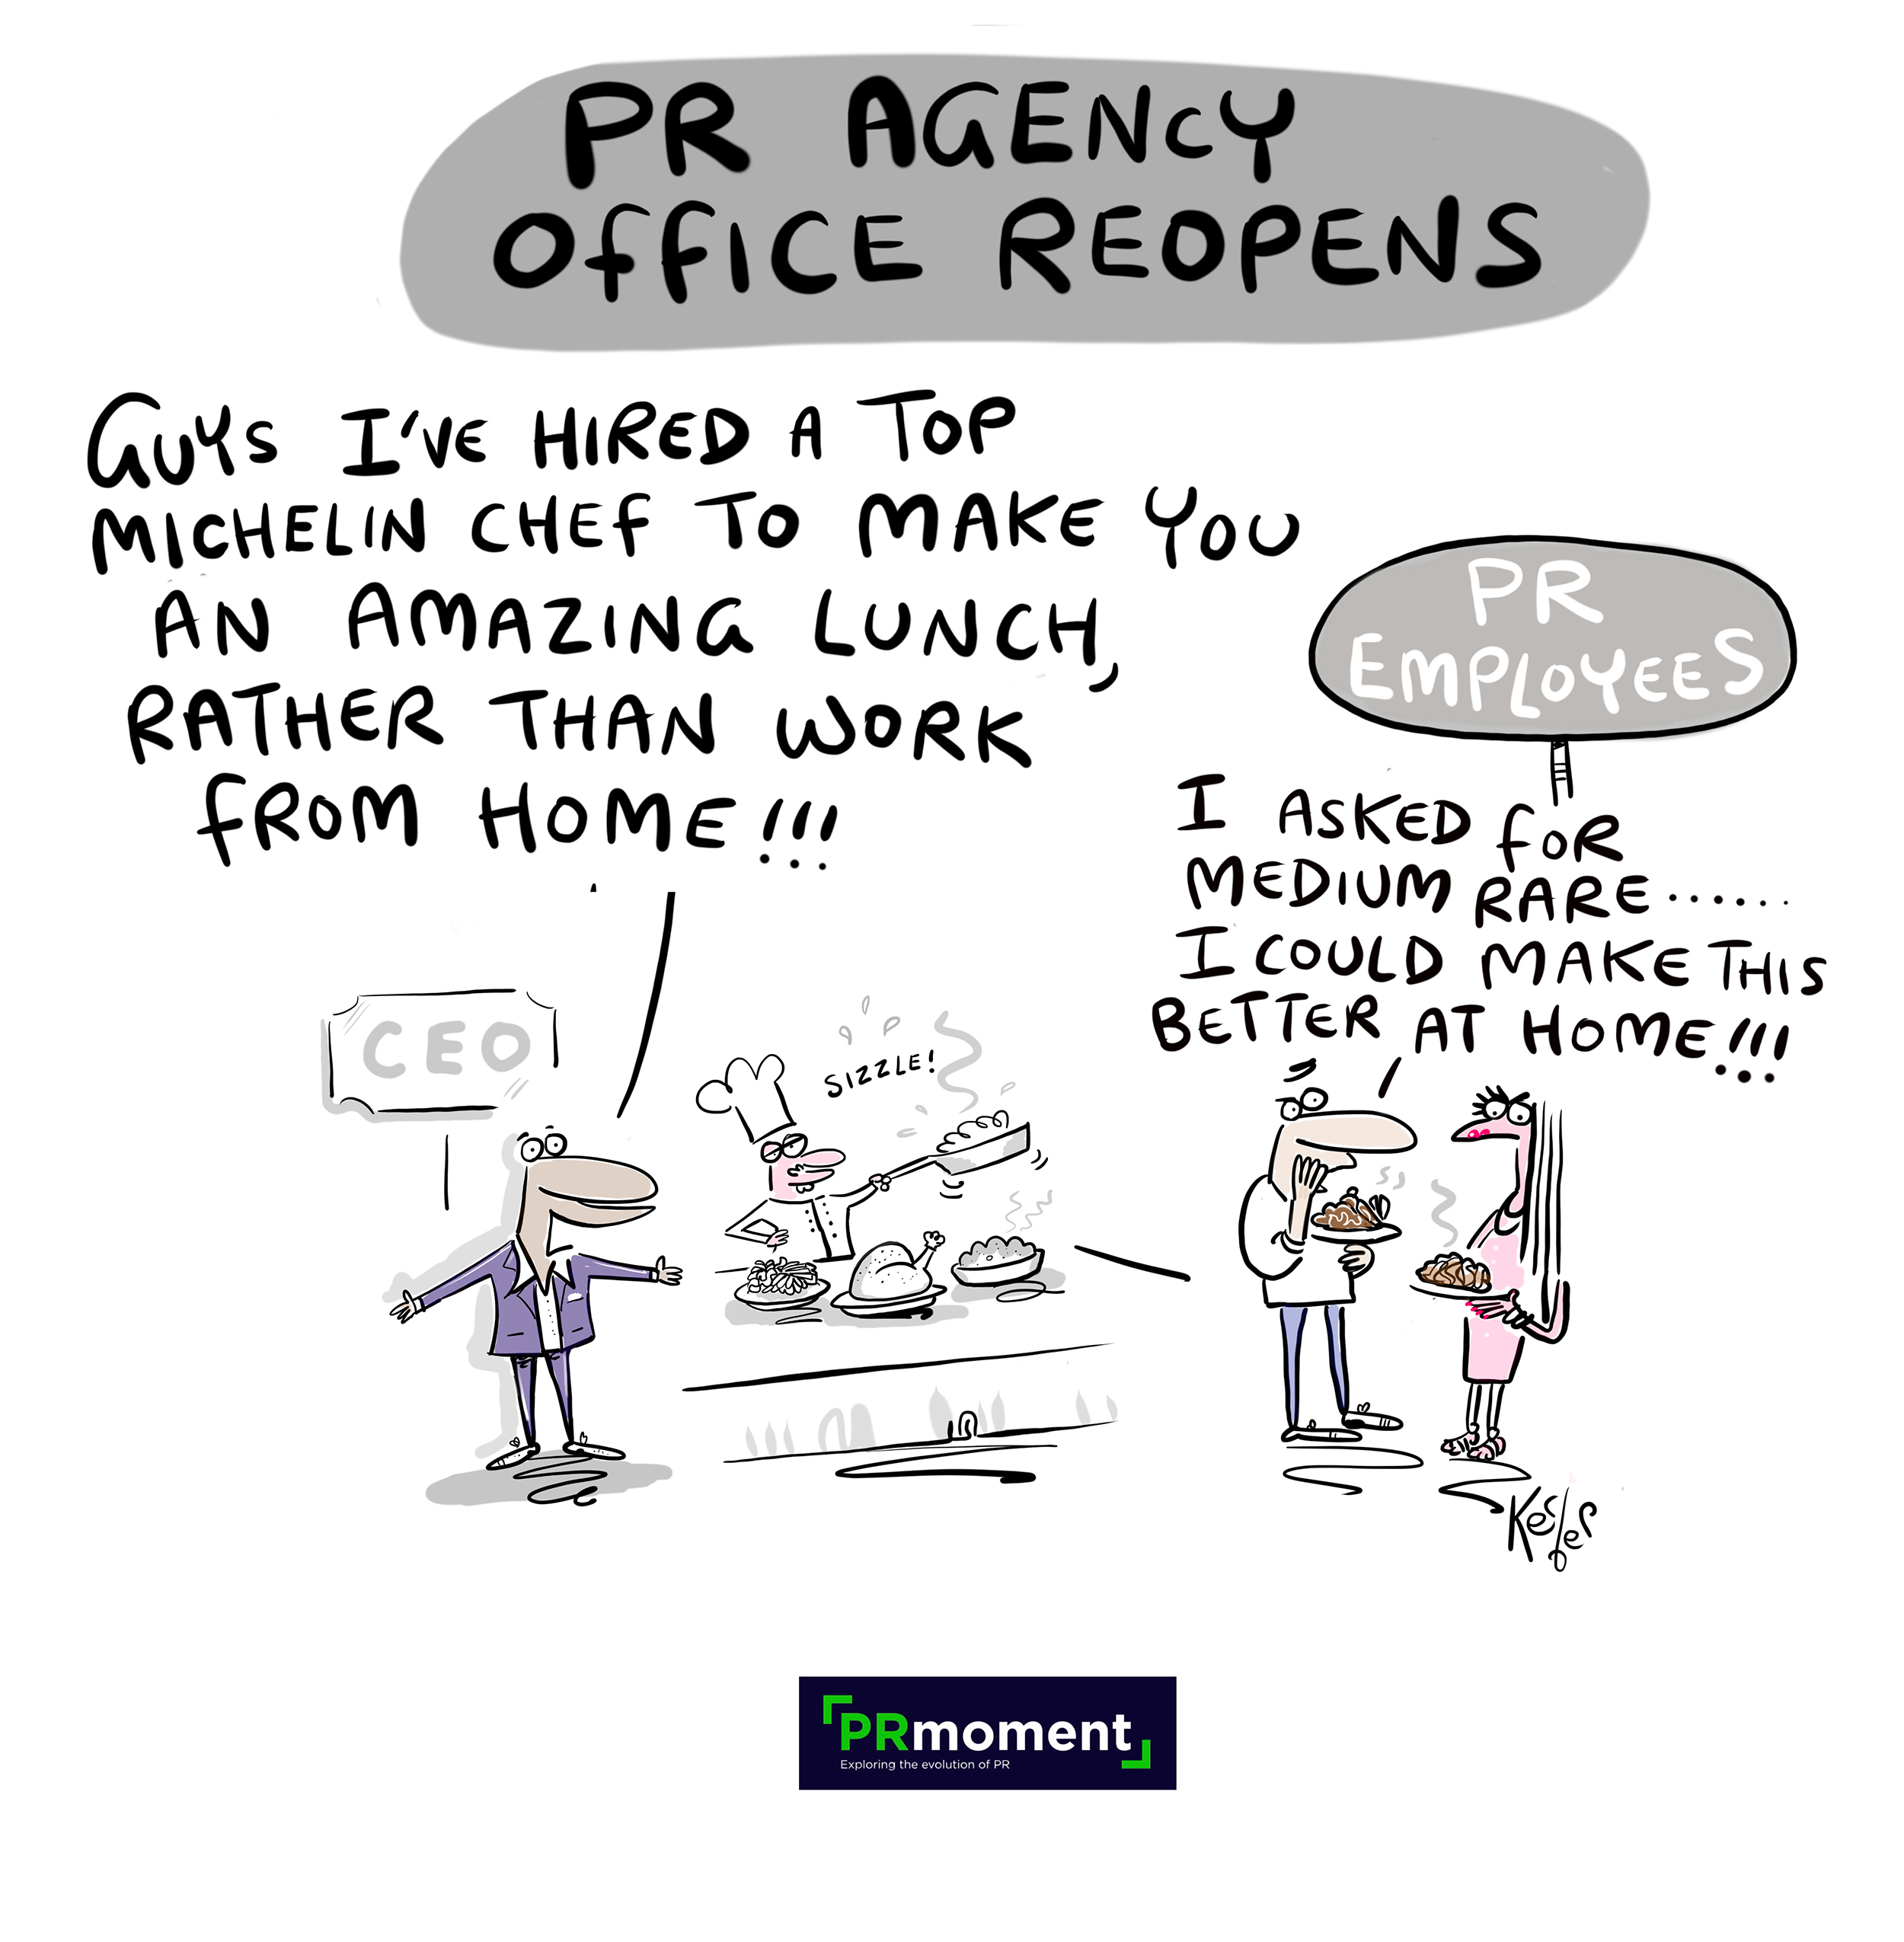 PR AGENCY OFFICE REOPENS